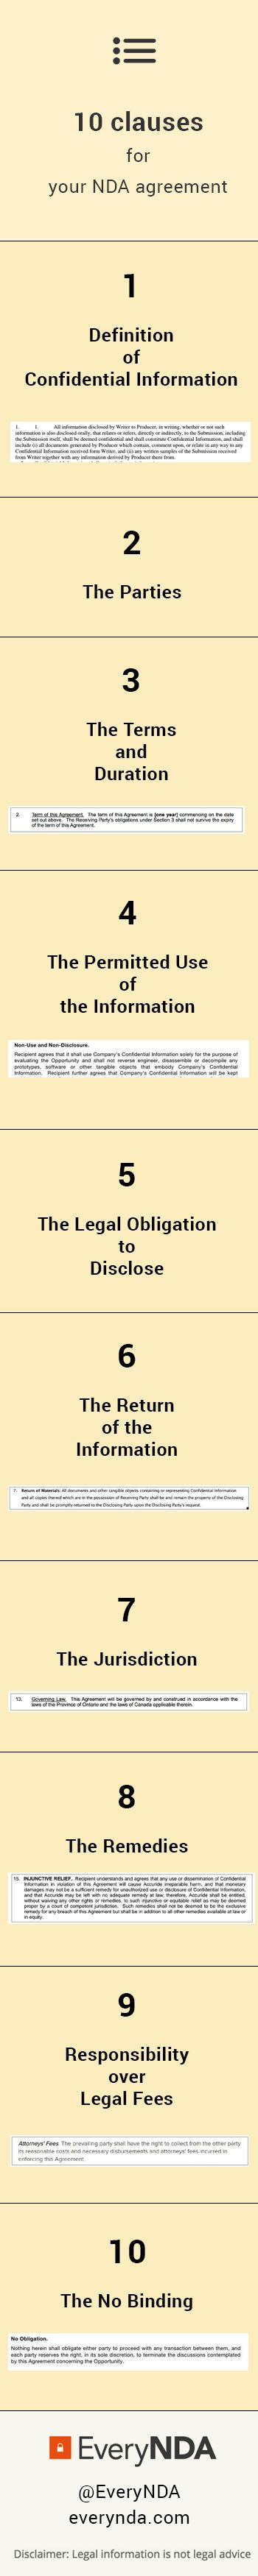 We're revealing the 10 key clauses needed to make your non-disclosure agreement worth more than just the paper it's written on.